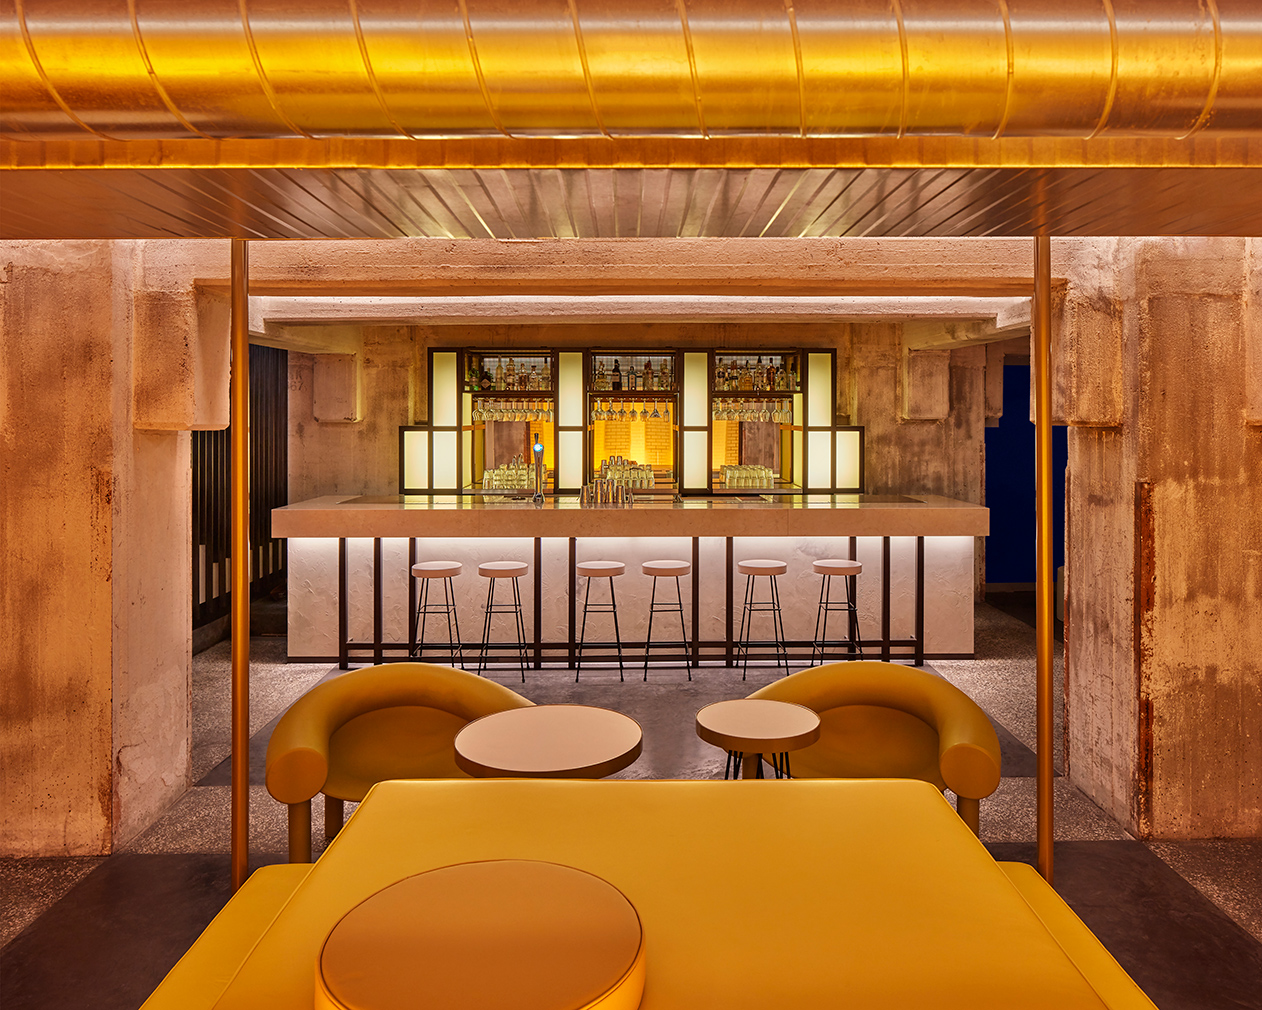 Studio Modijefsky serves up a feast of colour at new Maastricht restaurant The Commons